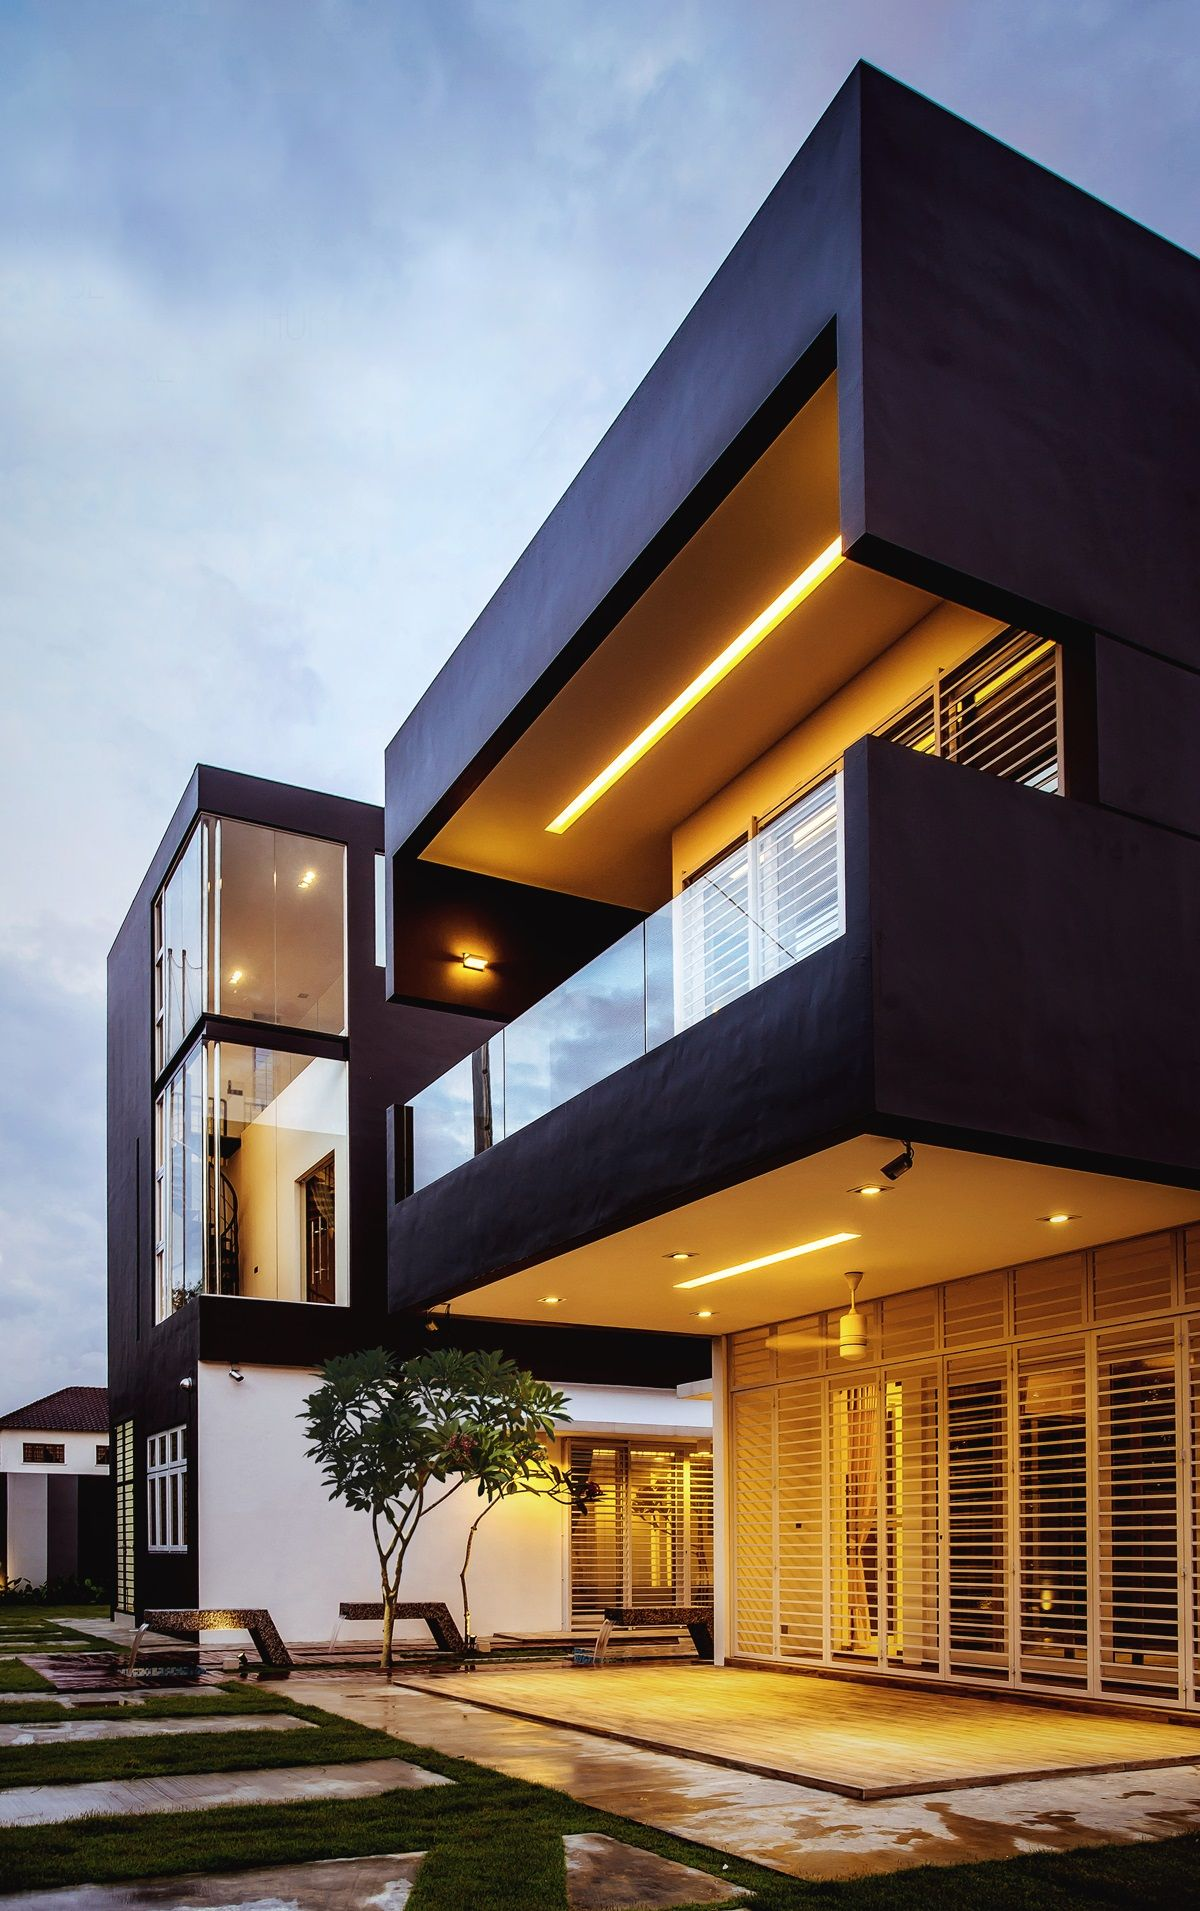 Interesting house exterior design in kulai malaysia